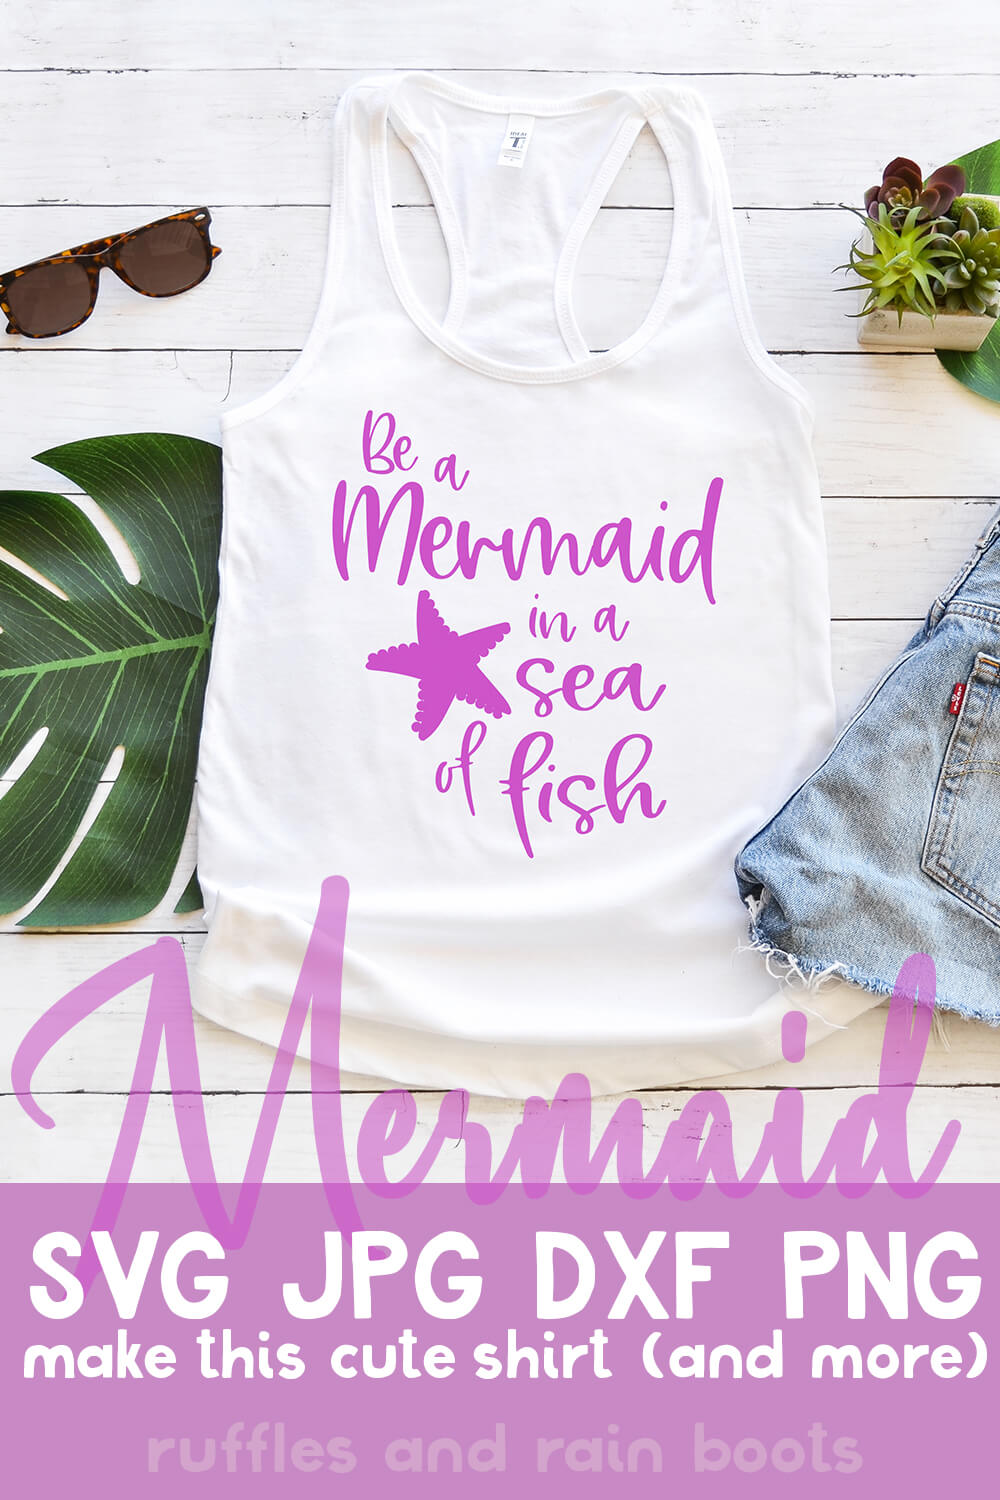 Be a Mermaid in a Sea of Fish free mermaid cut file for cricut on tank top with text which says mermaid svg jpg dxf png make this cute shirt (and more!)